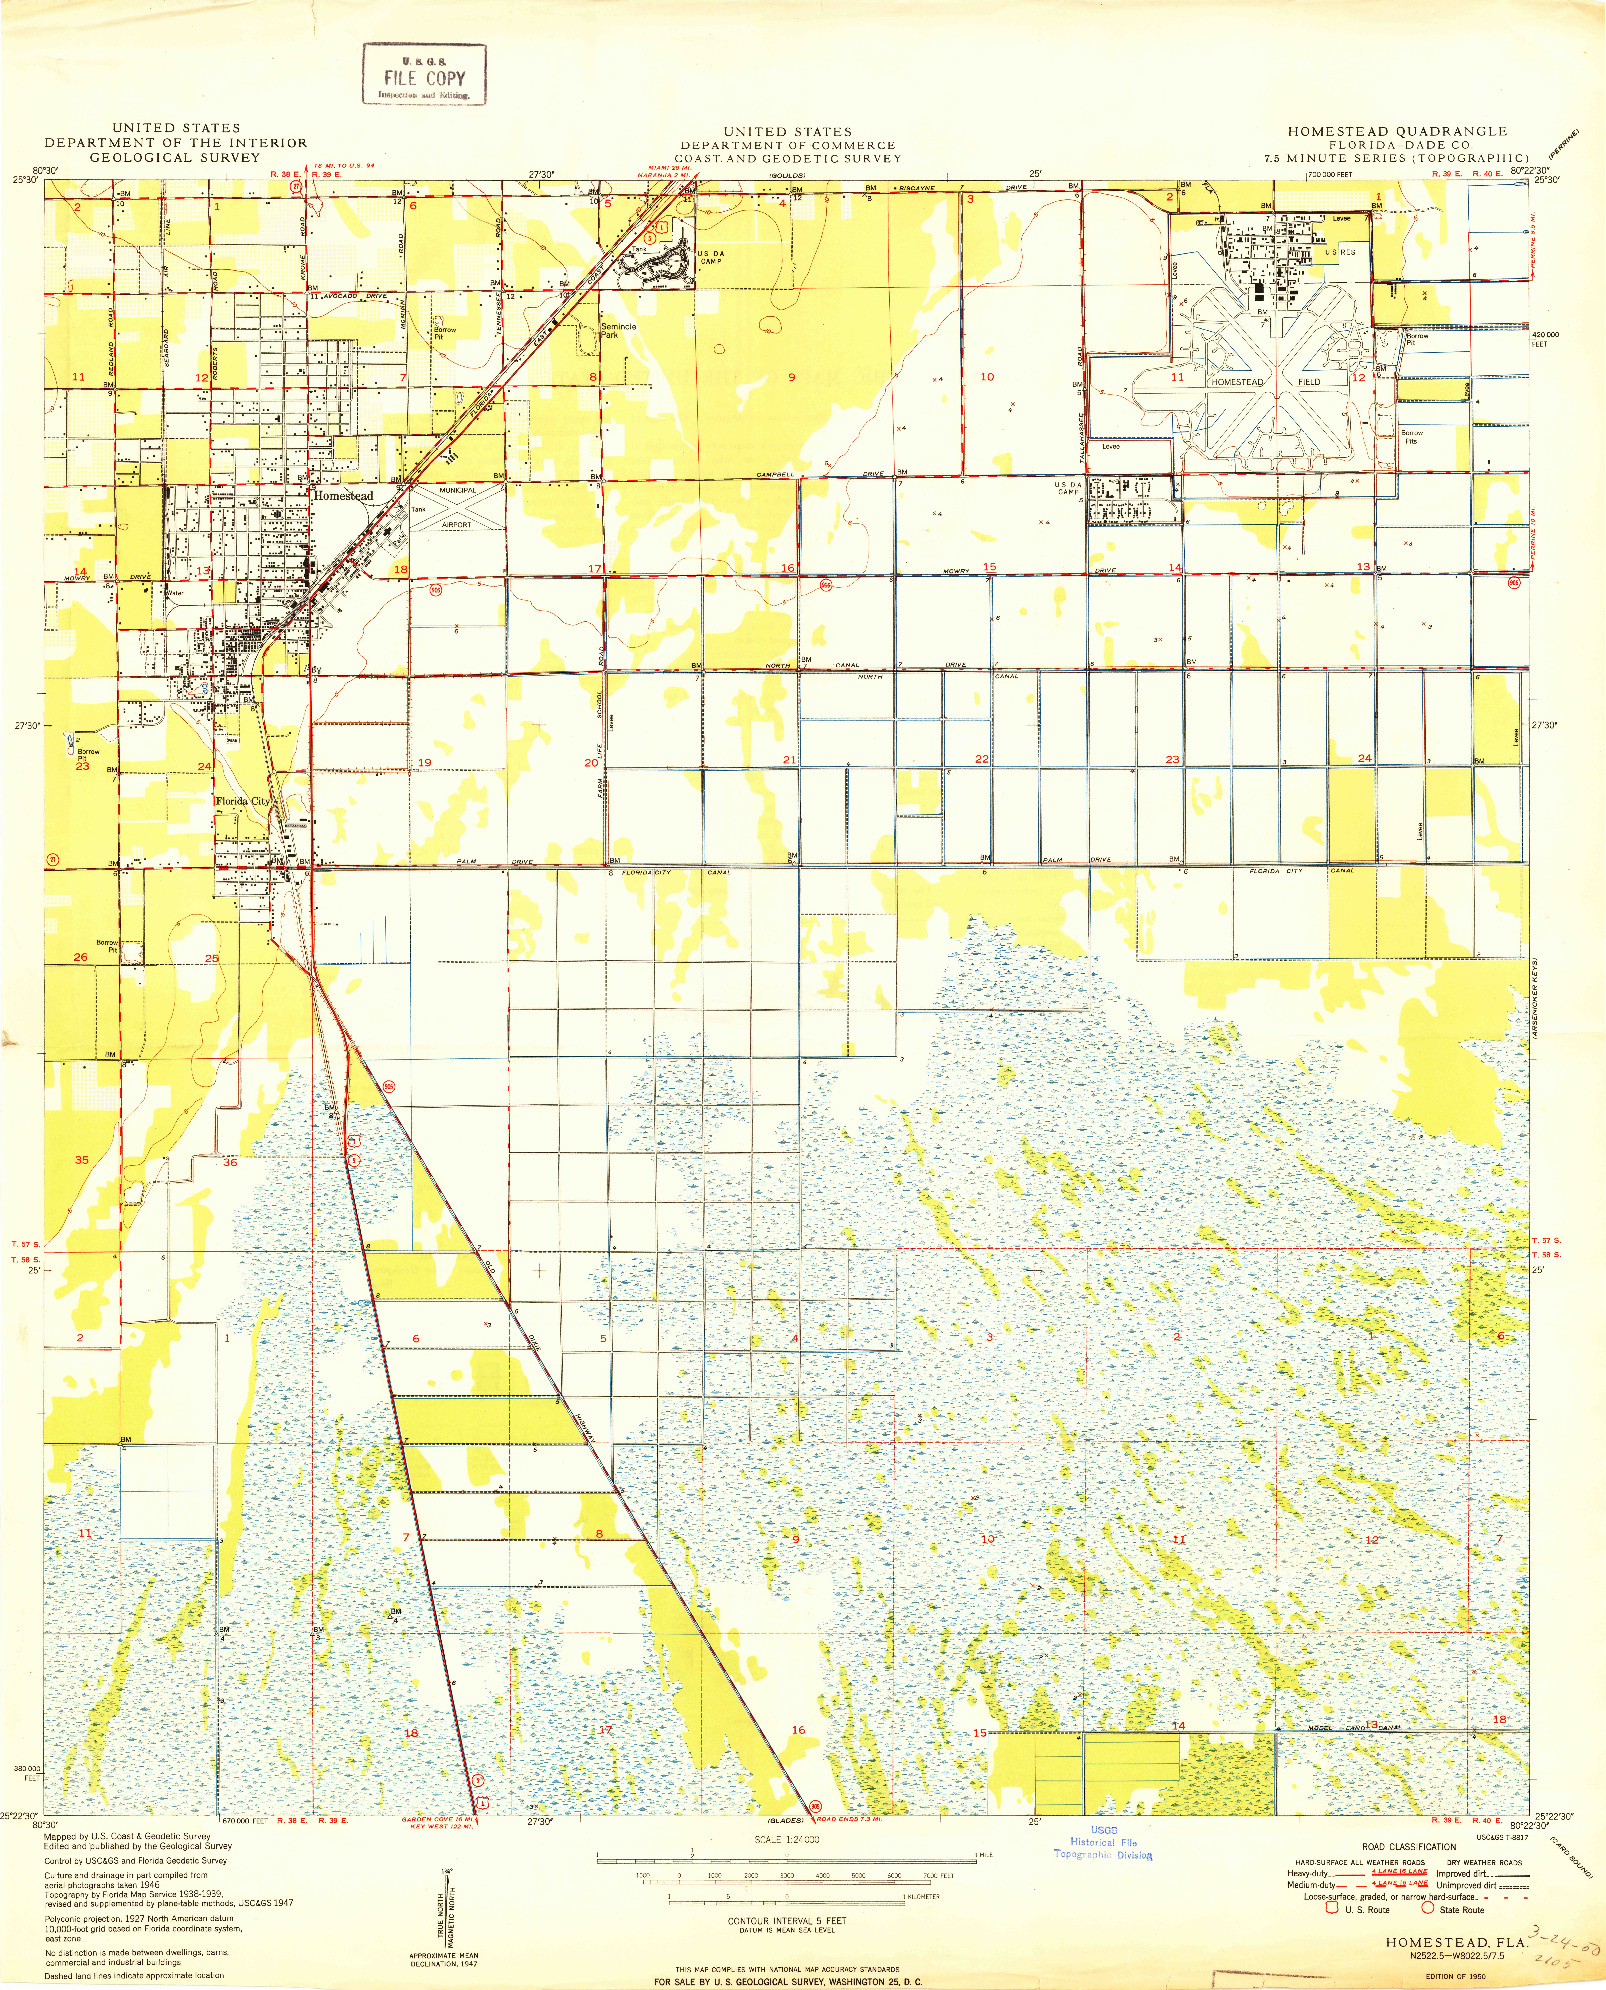 Usgs 1:24000-Scale Quadrangle For Homestead, Fl 1950 - Homestead Florida Map